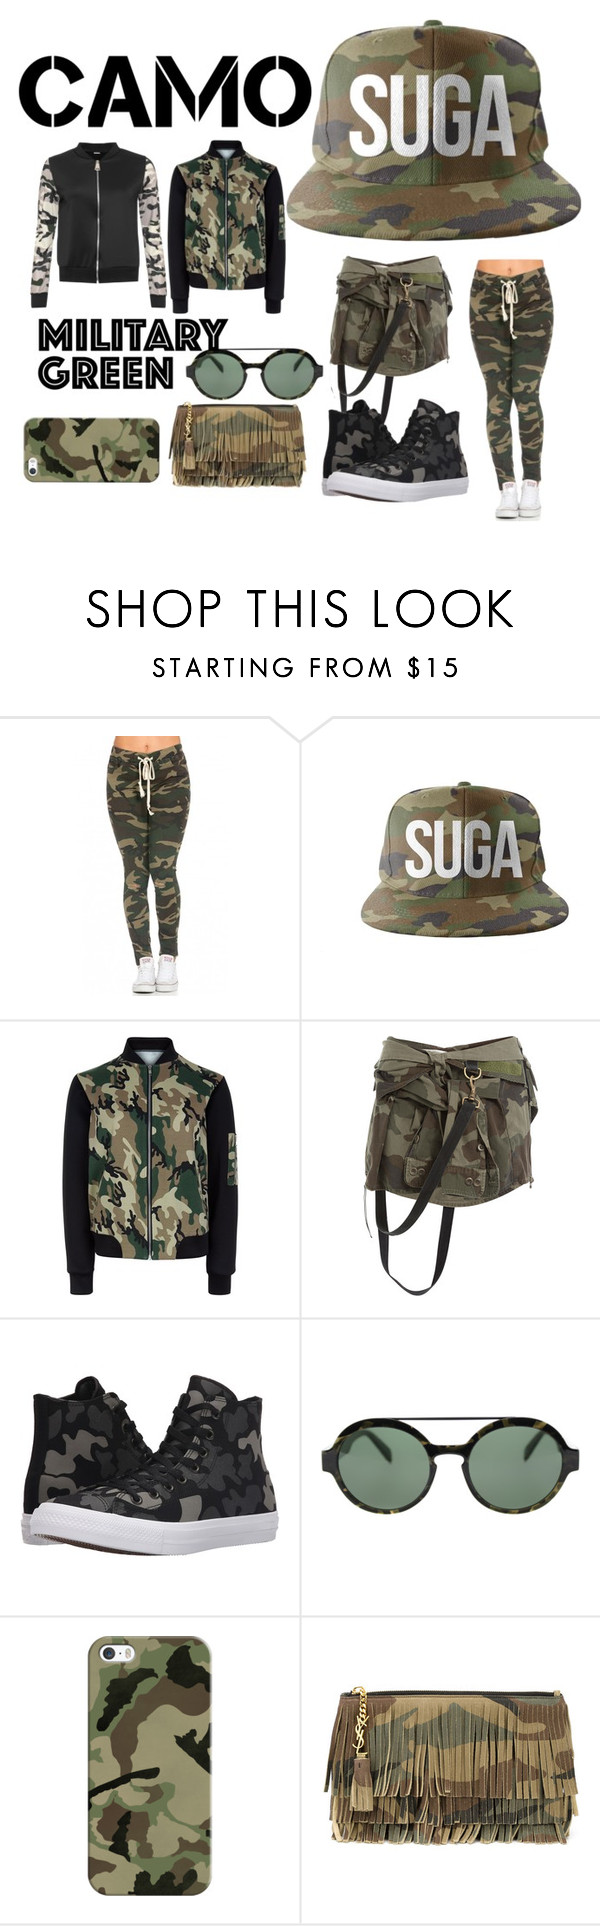 """""""Military Green"""" by iuliaiulia-1 ❤ liked on Polyvore featuring New Look, Faith Connexion, Converse, Italia Independent, Casetify, Yves Saint Laurent, WearAll and camostyle"""